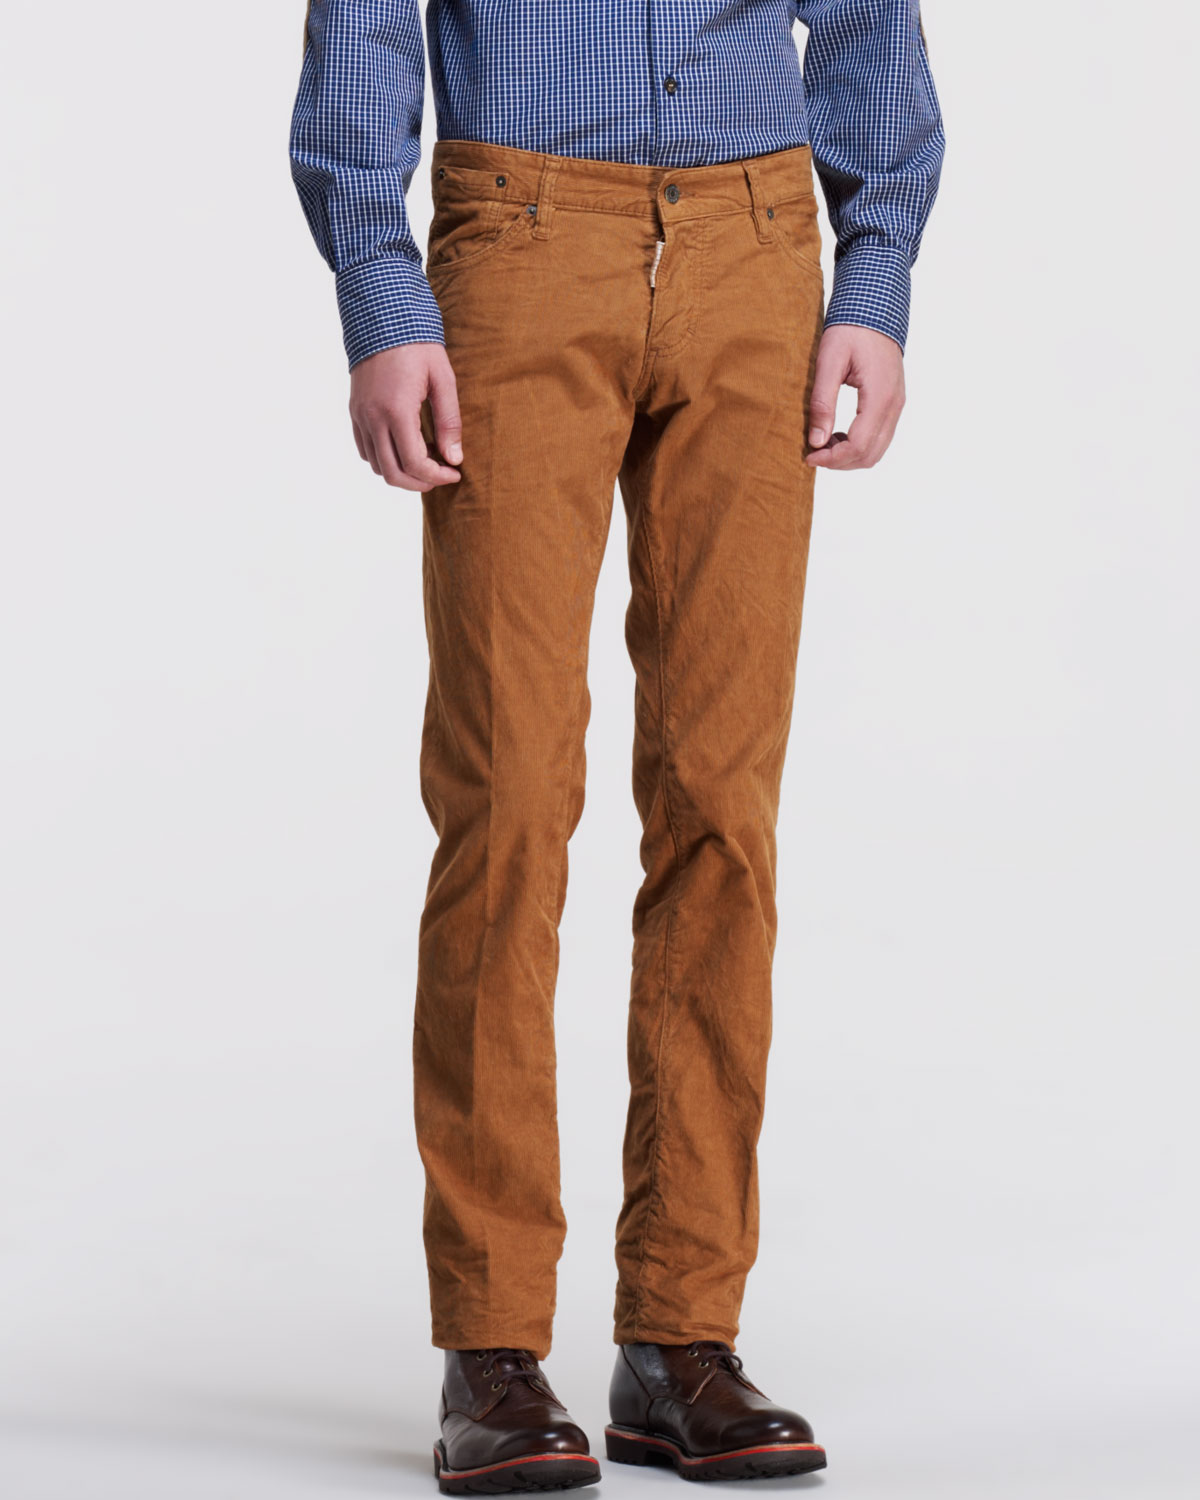 purchase newest choose clearance latest trends of 2019 DSquared² Brown Slimfit Corduroy Pants Camel for men